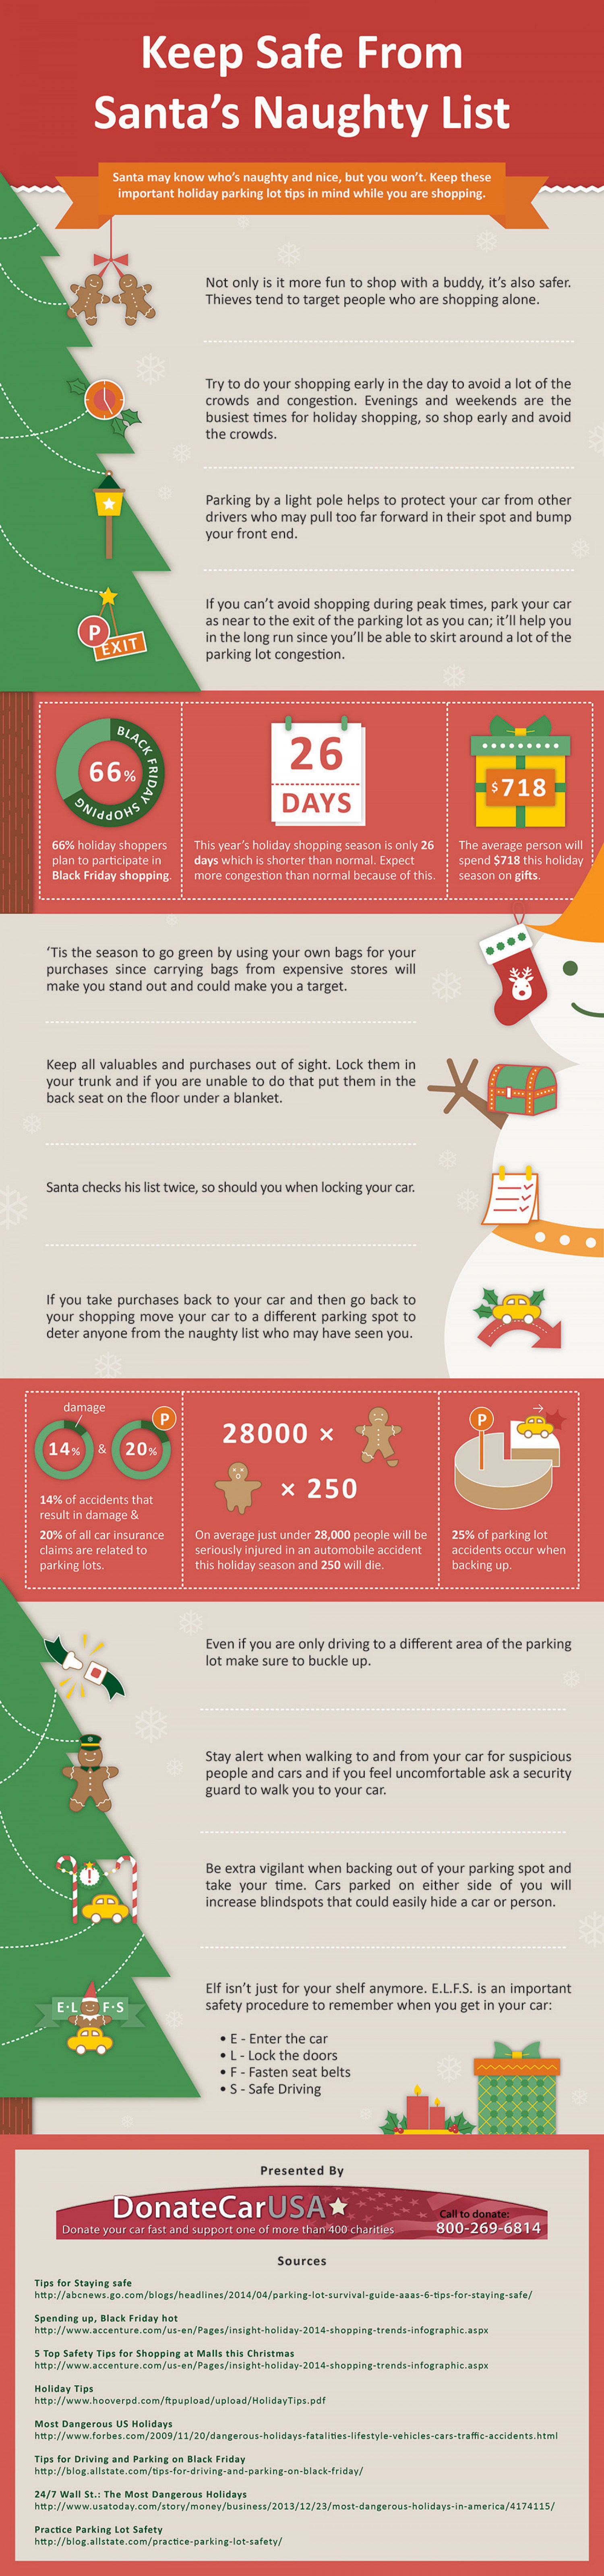 Safety Tips For Parking This Holiday Season Infographic